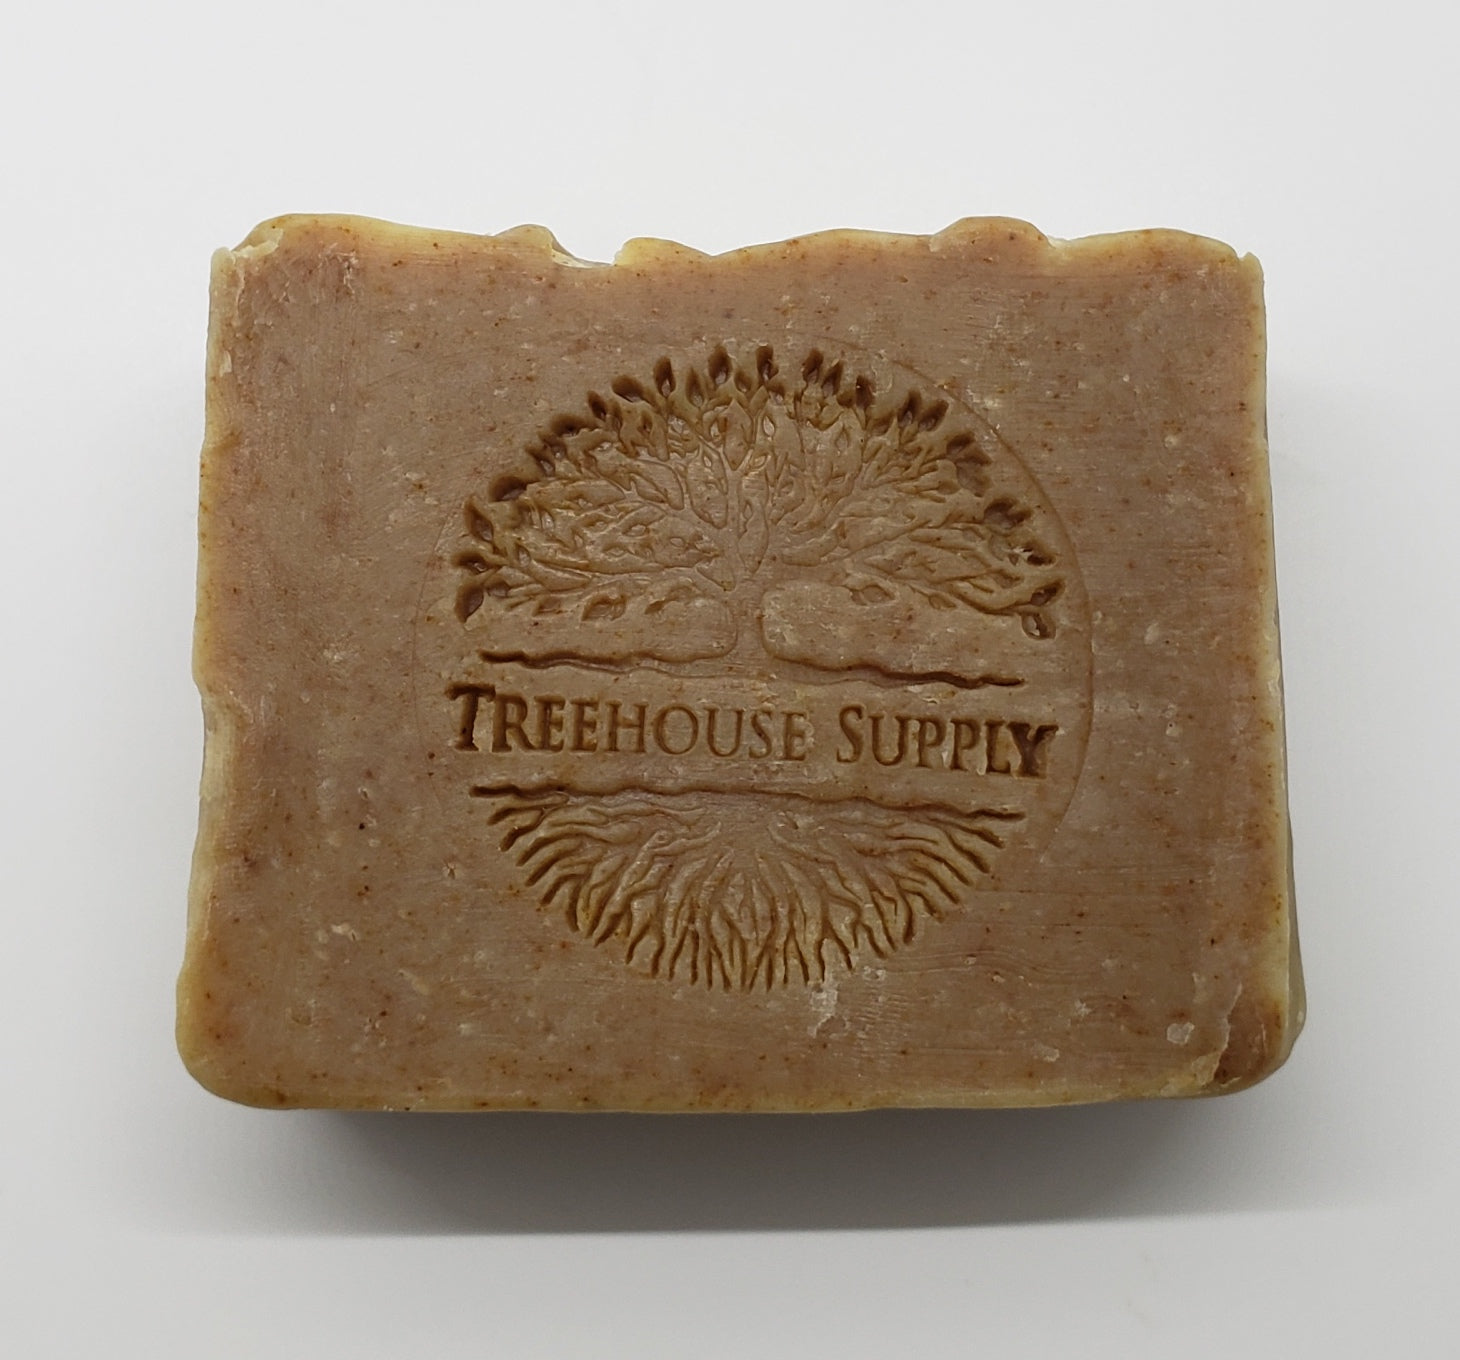 Zero Waste Dish Soap Block - Treehouse Supply - Plastic free, ecofriendly products